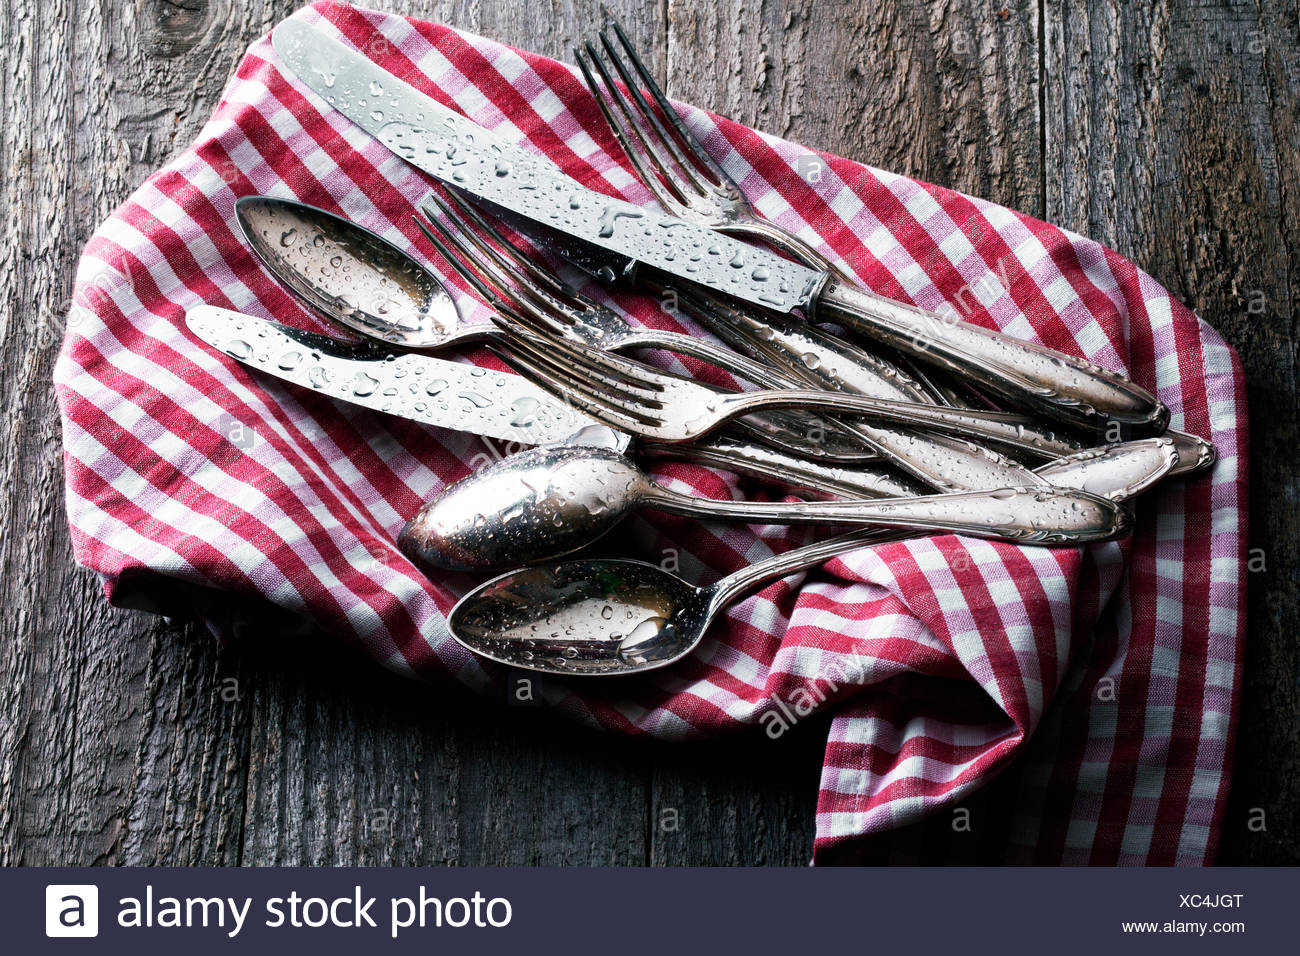 Freshly cleaned, wet silverware on checked tea towel - Stock Image